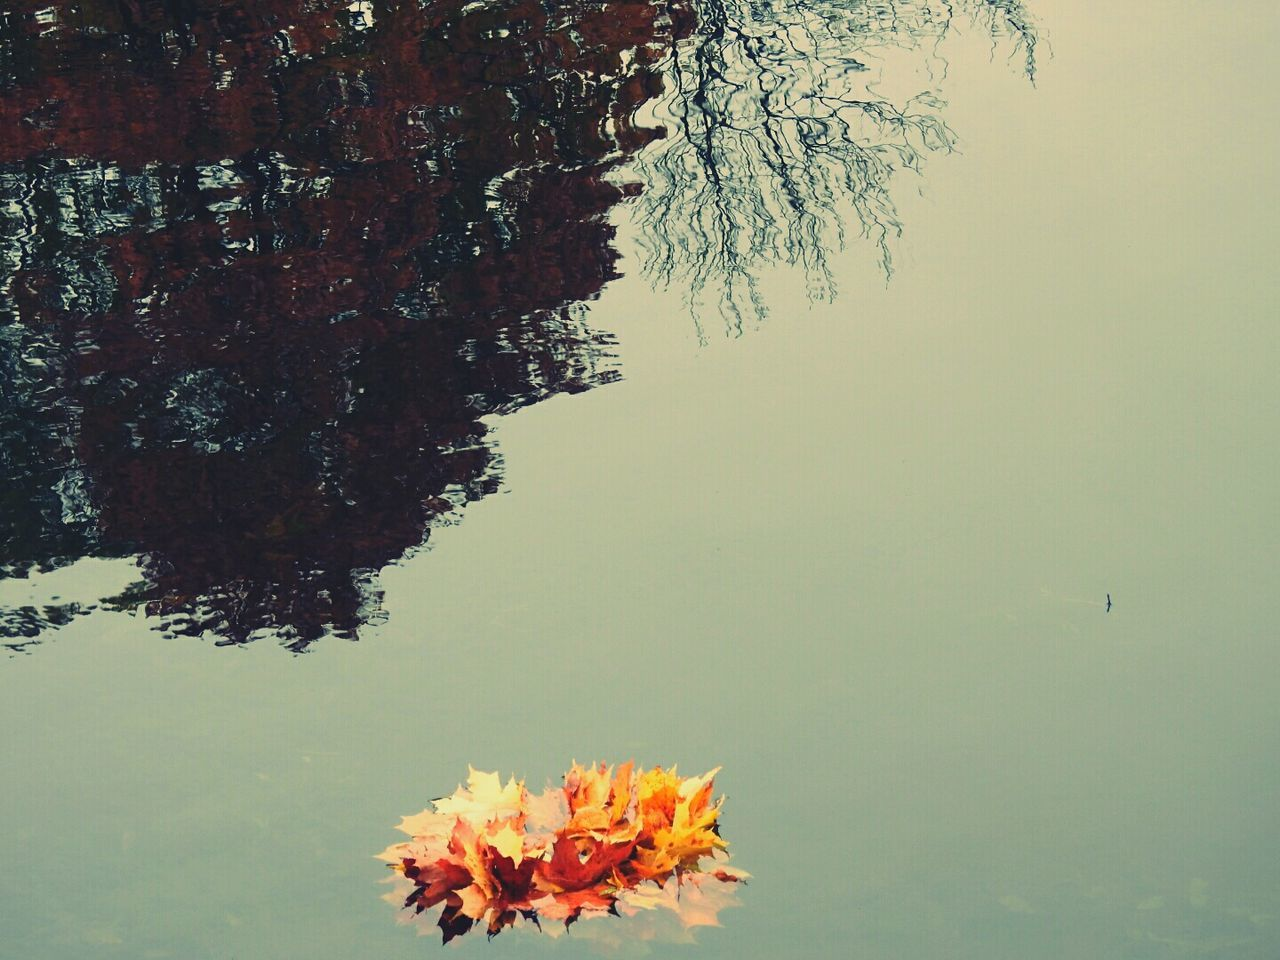 water, nature, tree, beauty in nature, flower, lake, tranquility, leaf, growth, waterfront, floating on water, no people, tranquil scene, outdoors, day, scenics, plant, foreground, lily pad, sky, freshness, scenery, flower head, close-up